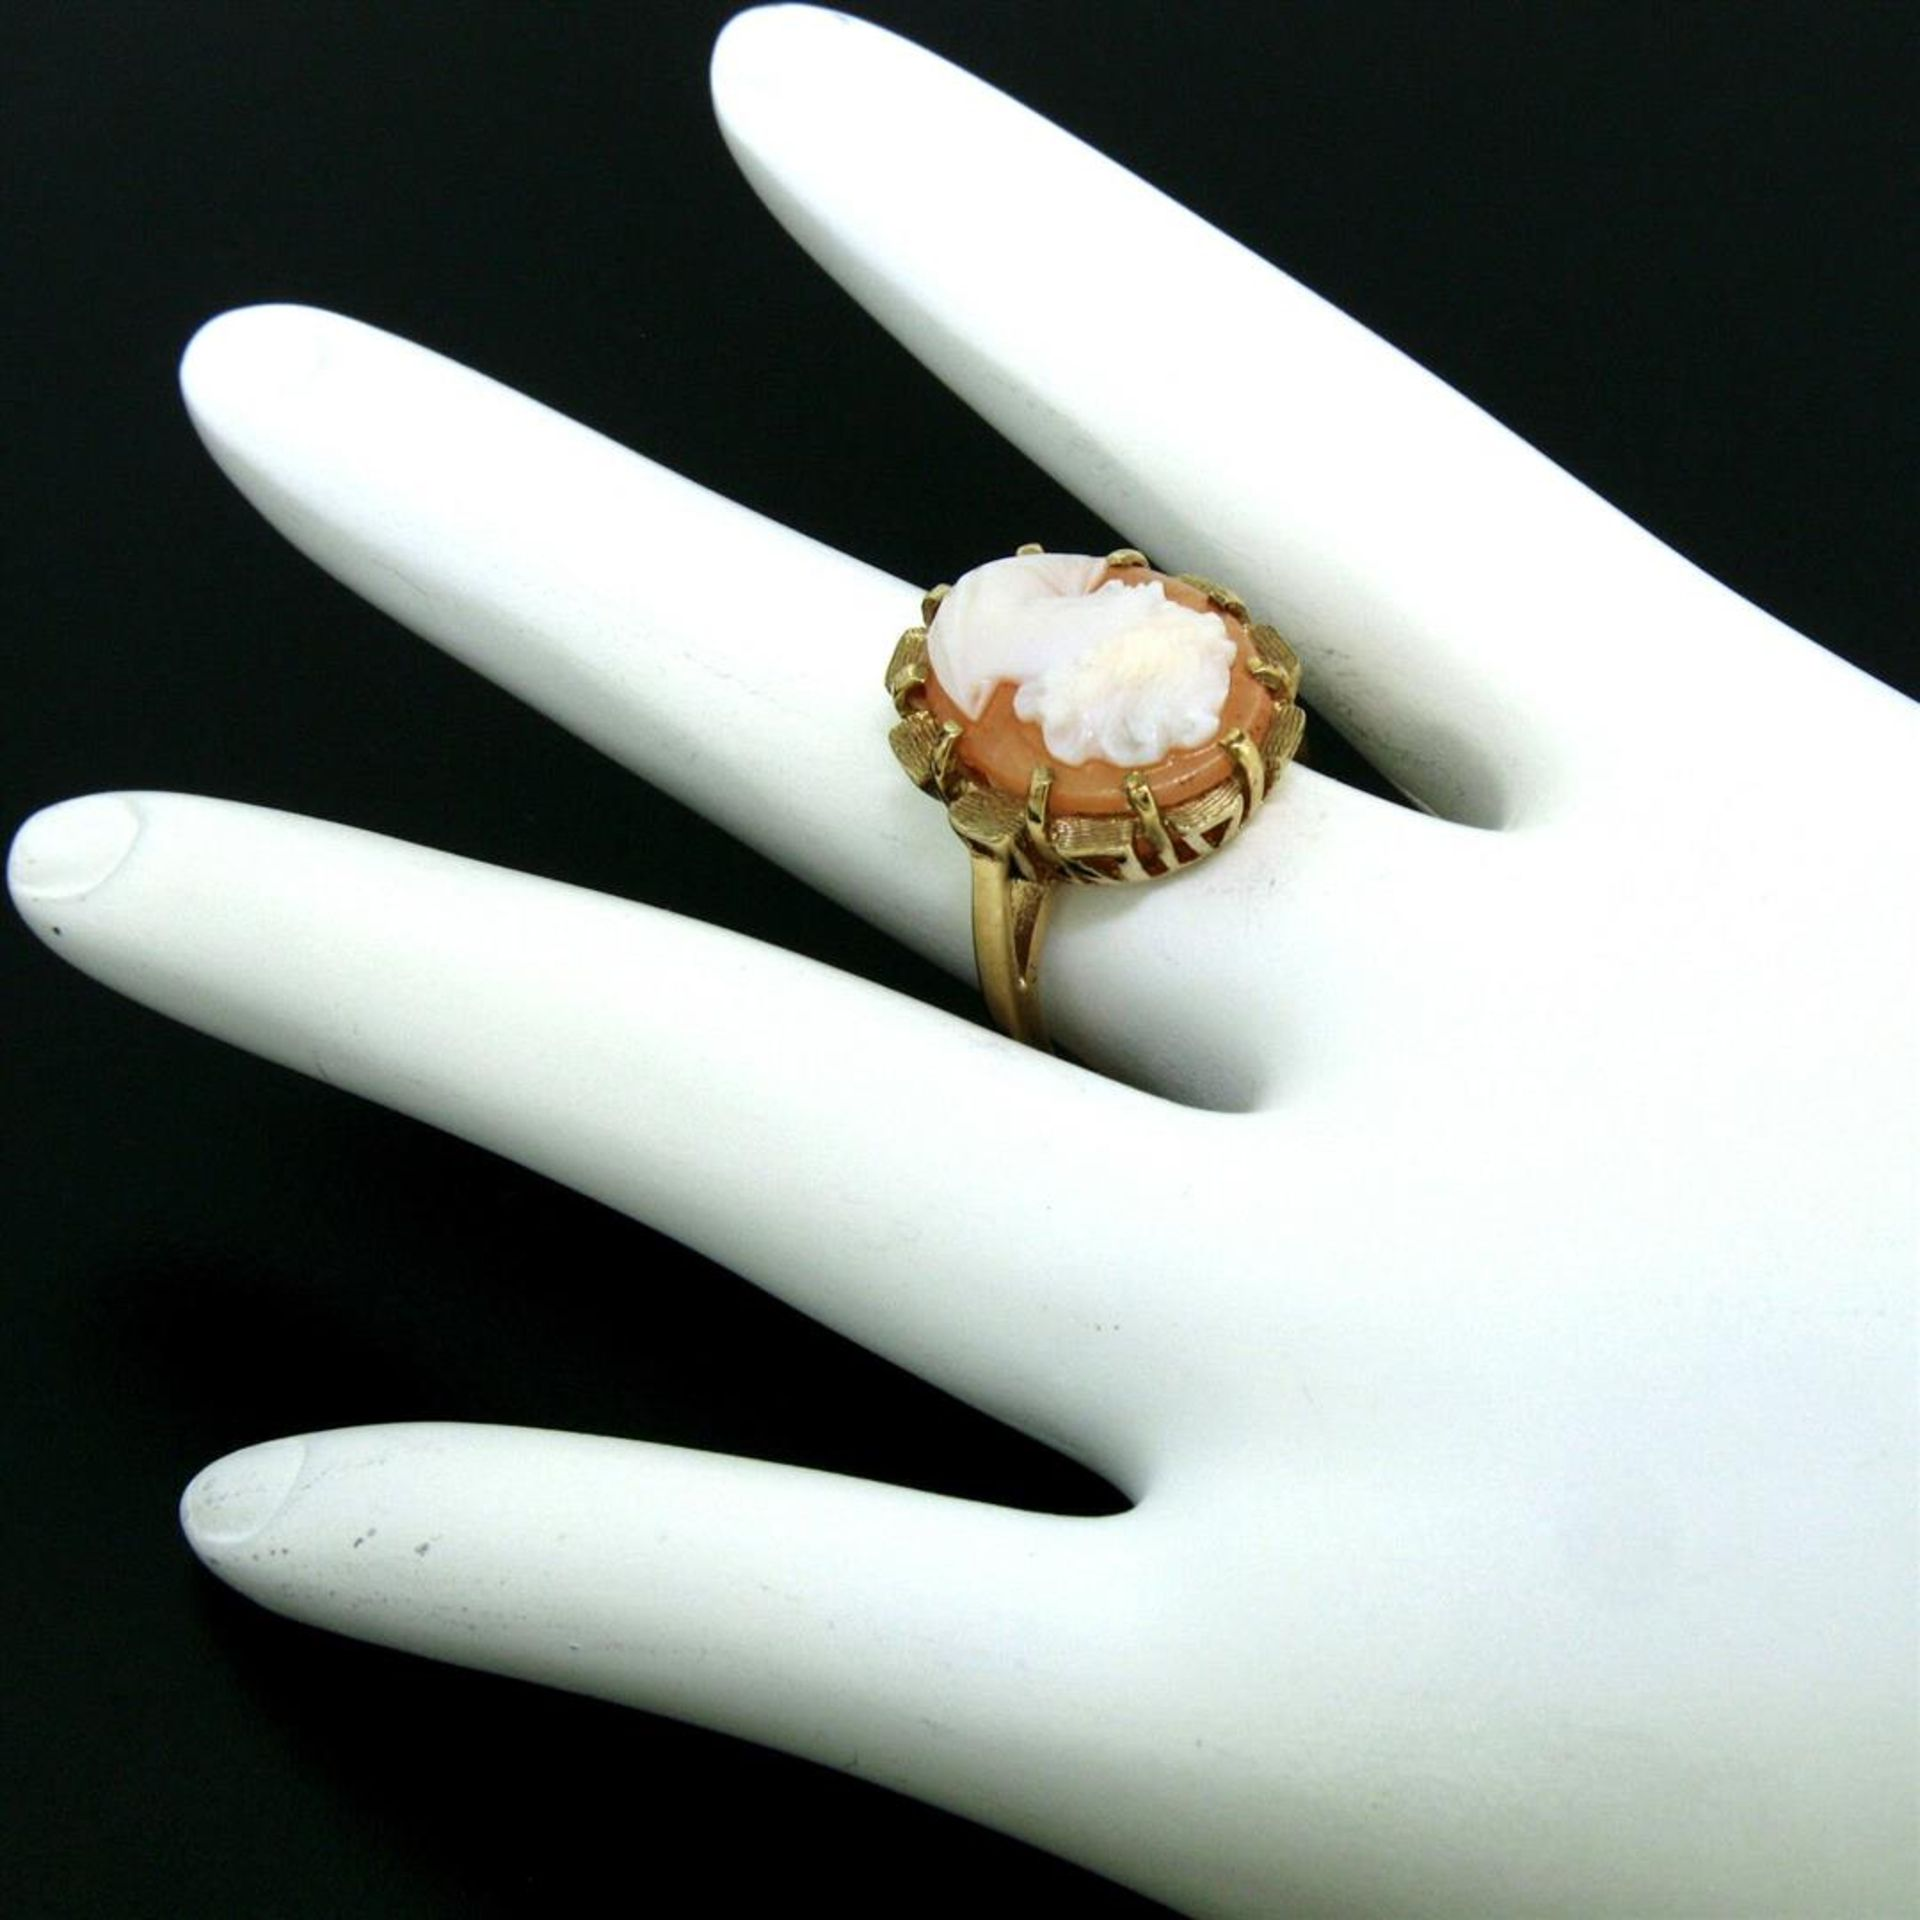 Vintage 14k Yellow Gold Oval Carved Shell Cameo Ring w/ Brushed Finish Frame - Image 4 of 8